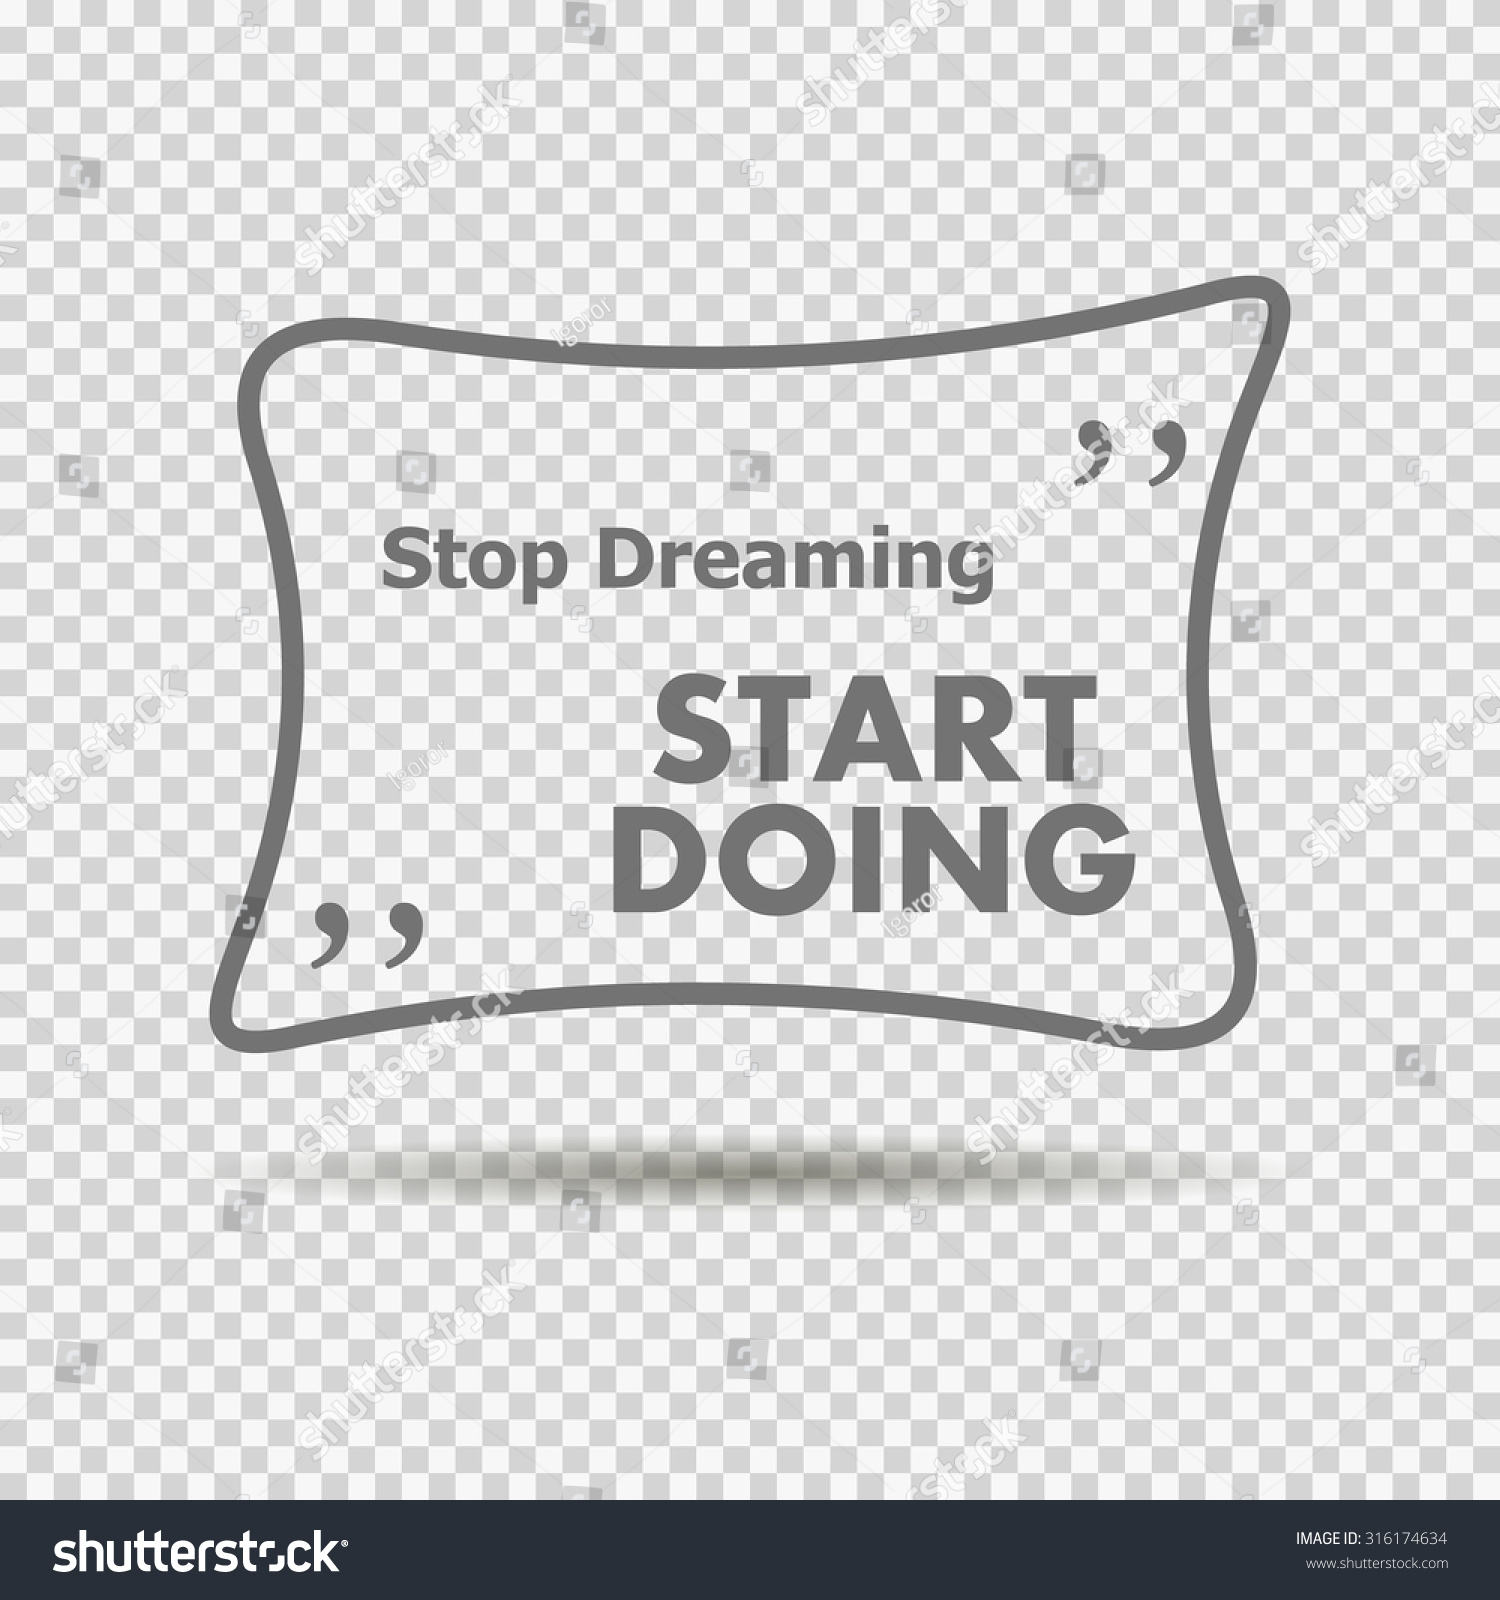 Inspiring Work Quotes Wise Inspiring Sentence Quotes Stop Dreaming Stock Vector